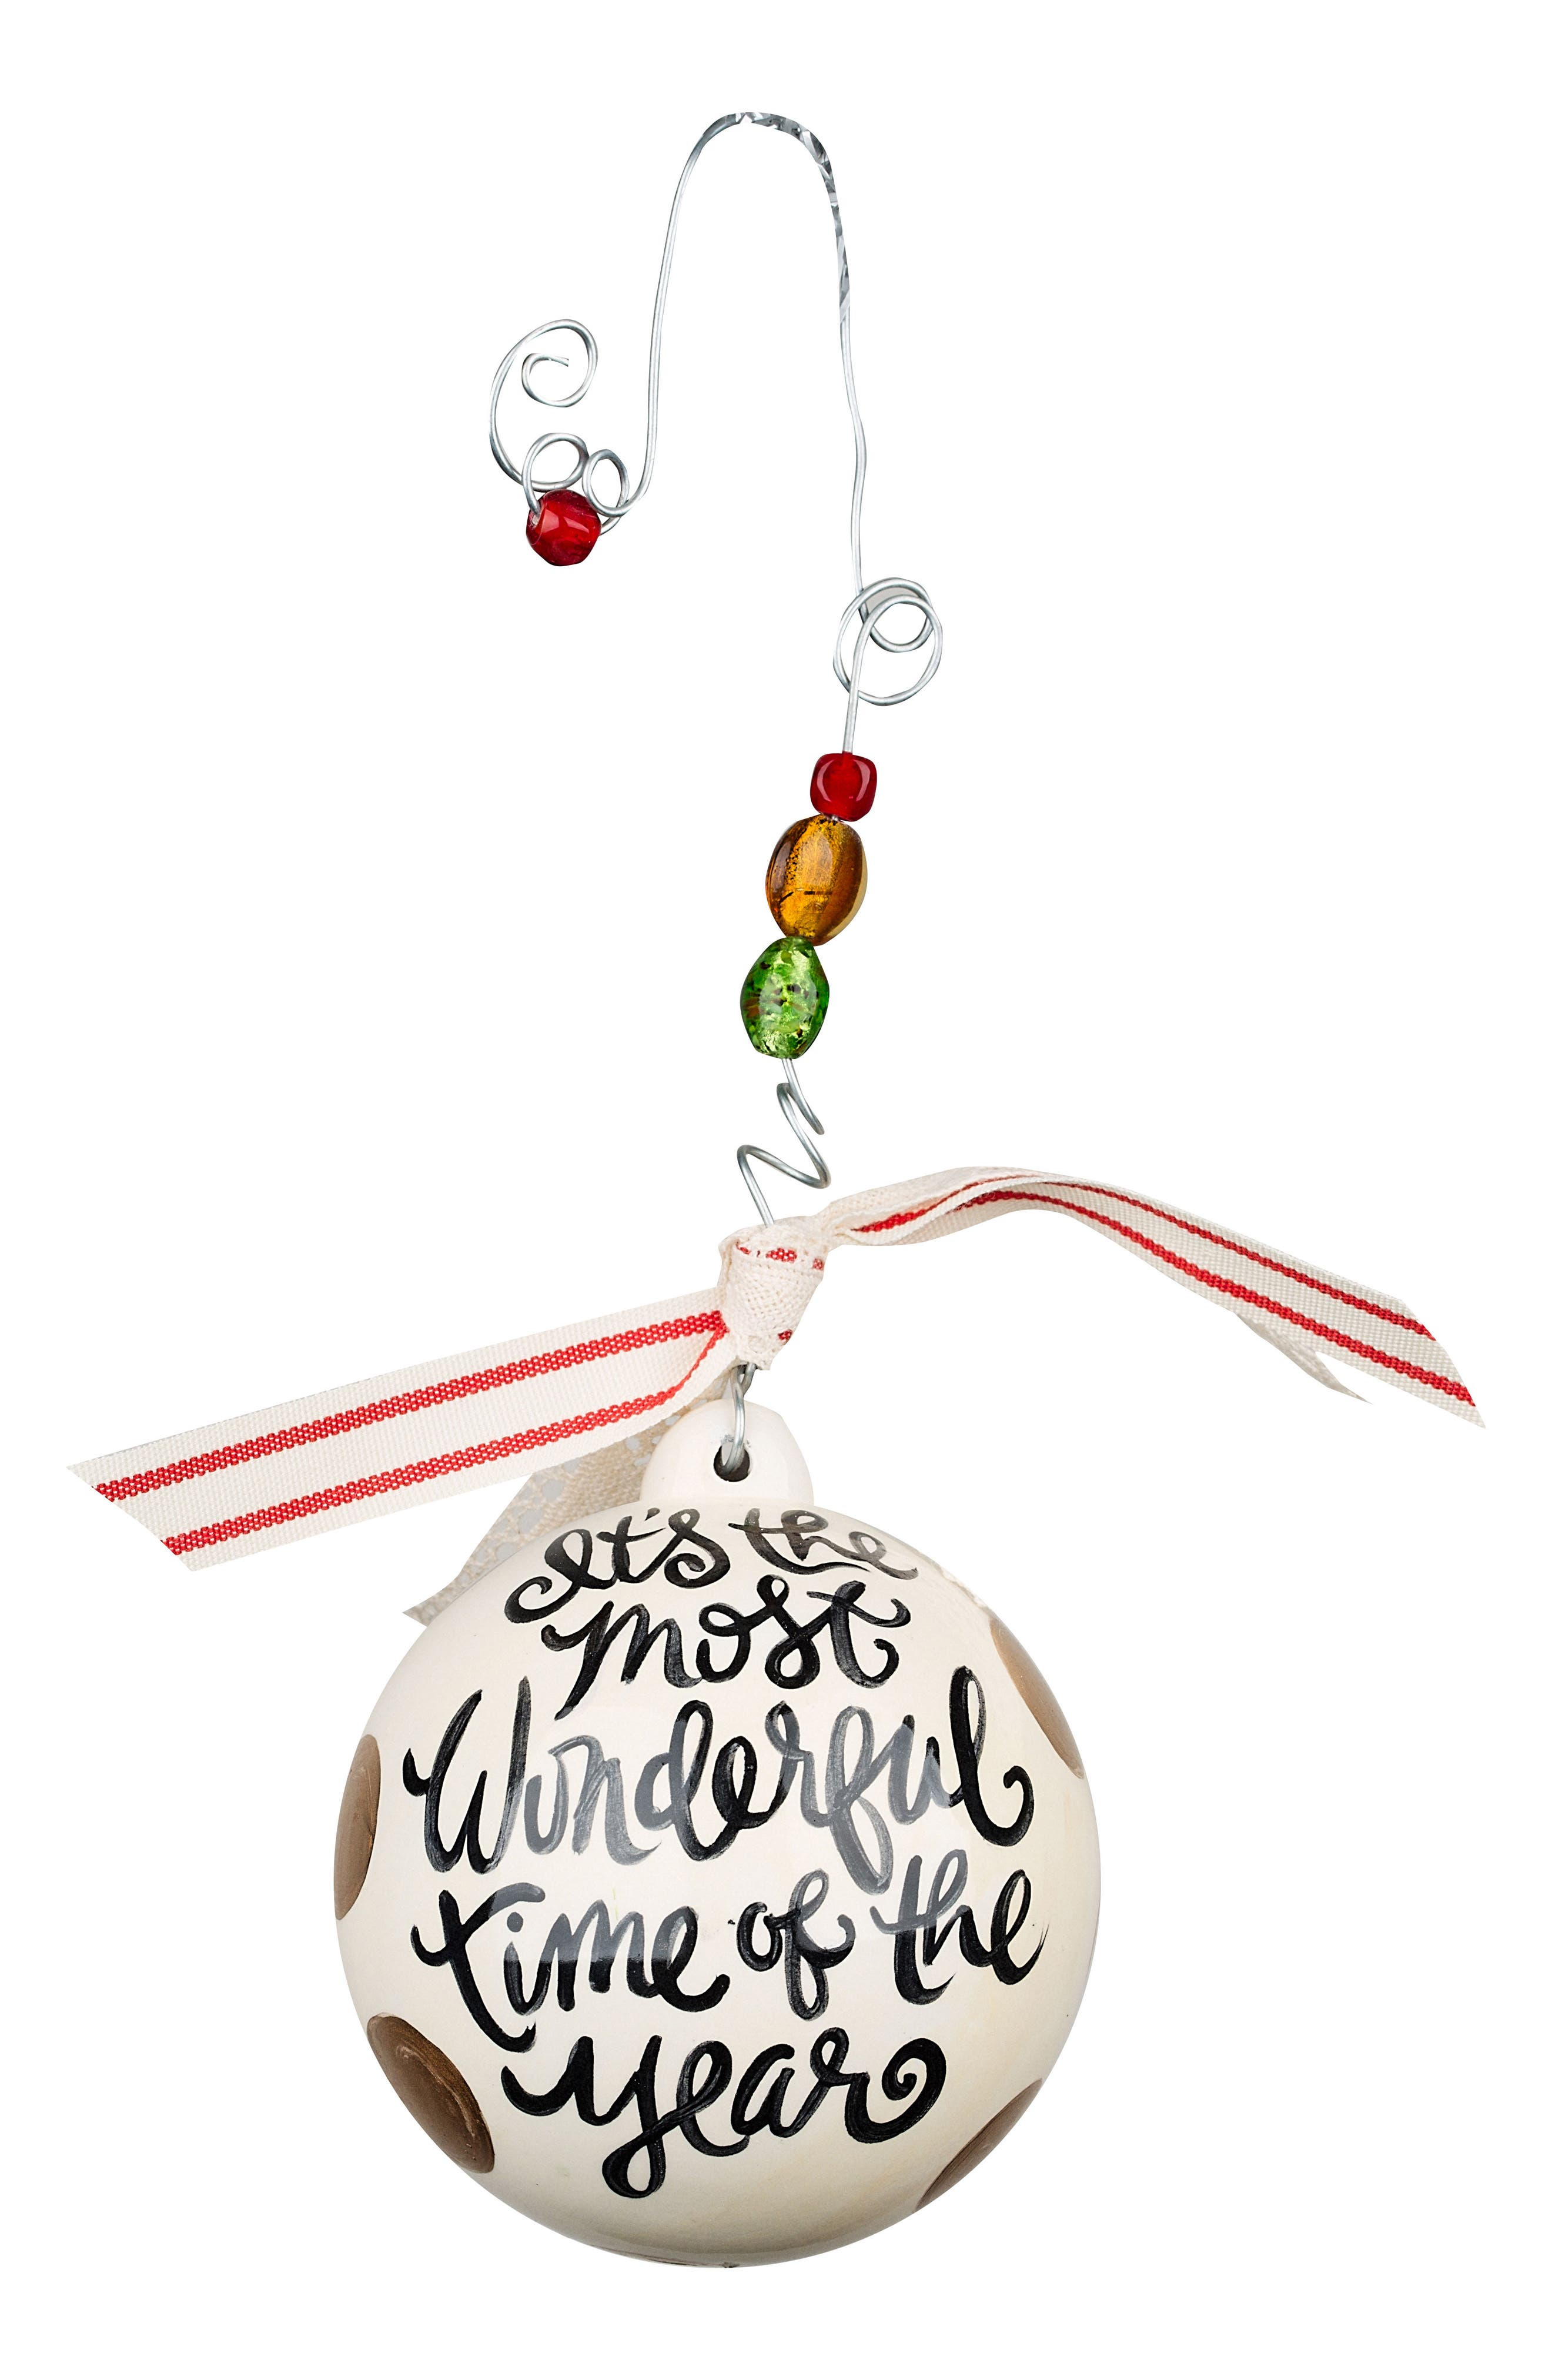 Most Wonderful Time of the Year Ball Ornament,                             Main thumbnail 1, color,                             900